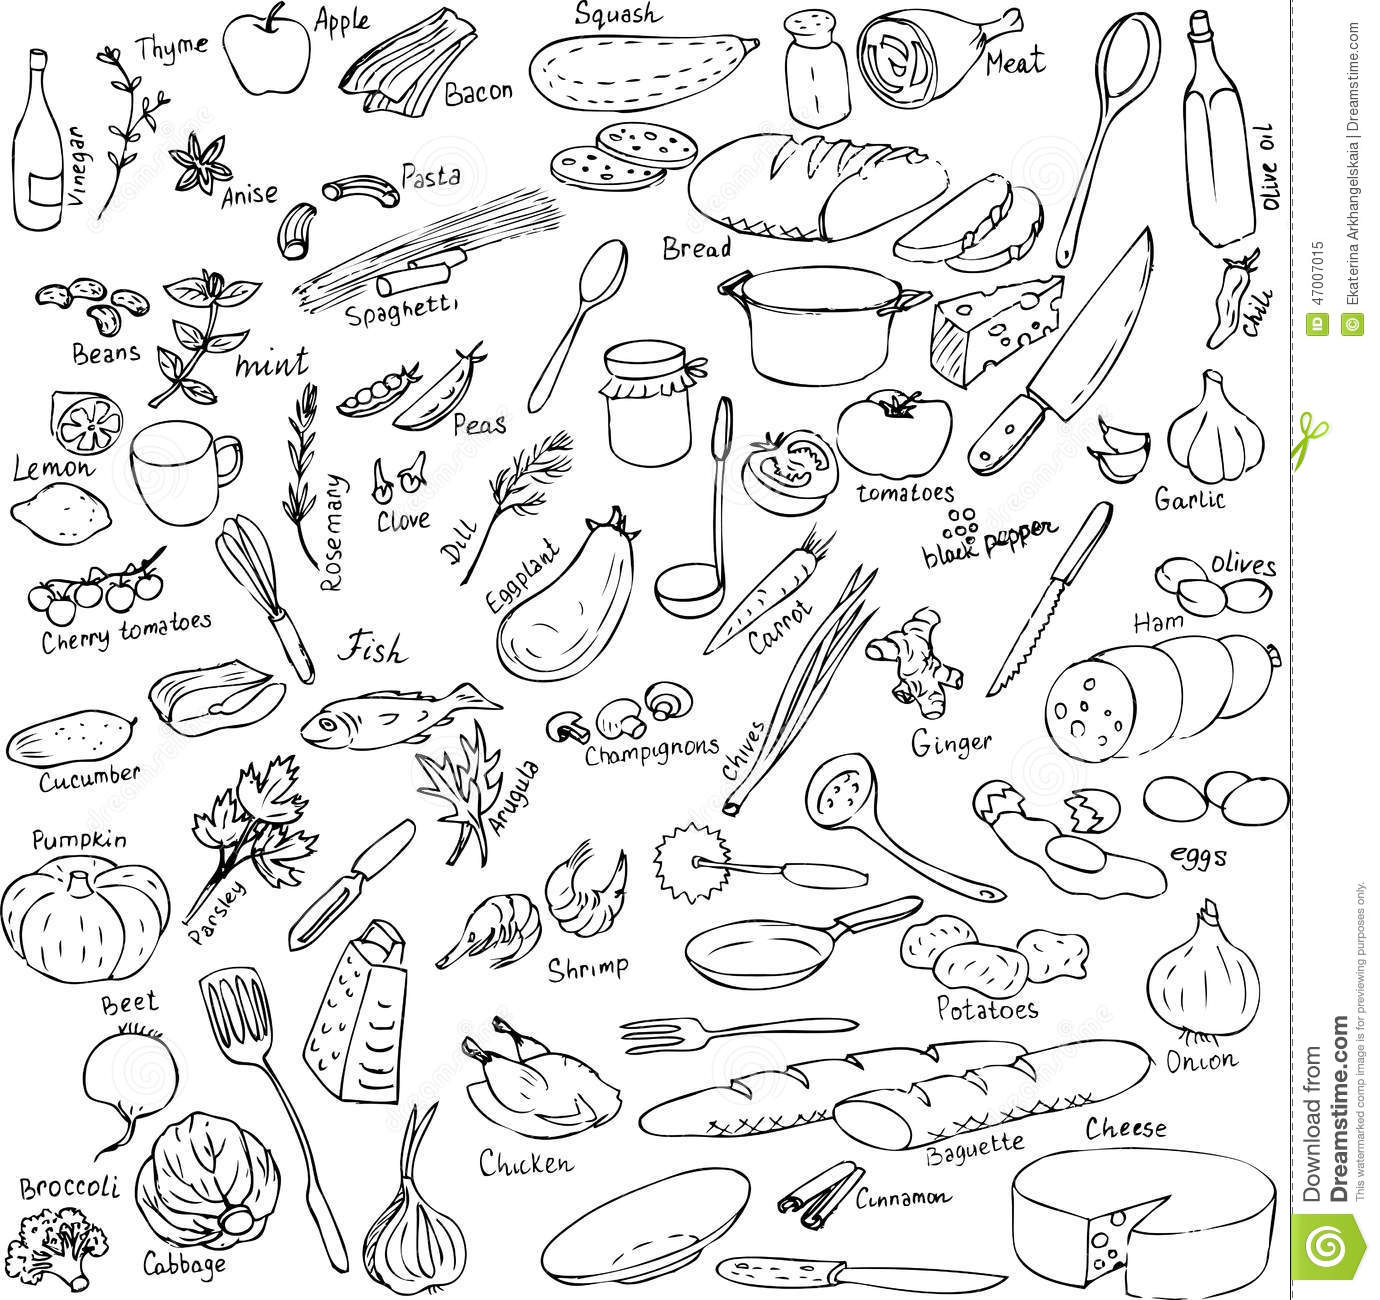 The Kitchen Sink Art Drawing Sketch Sketchbook By: Sketch Of Foods, Utensils And Kitchen Equipment Stock